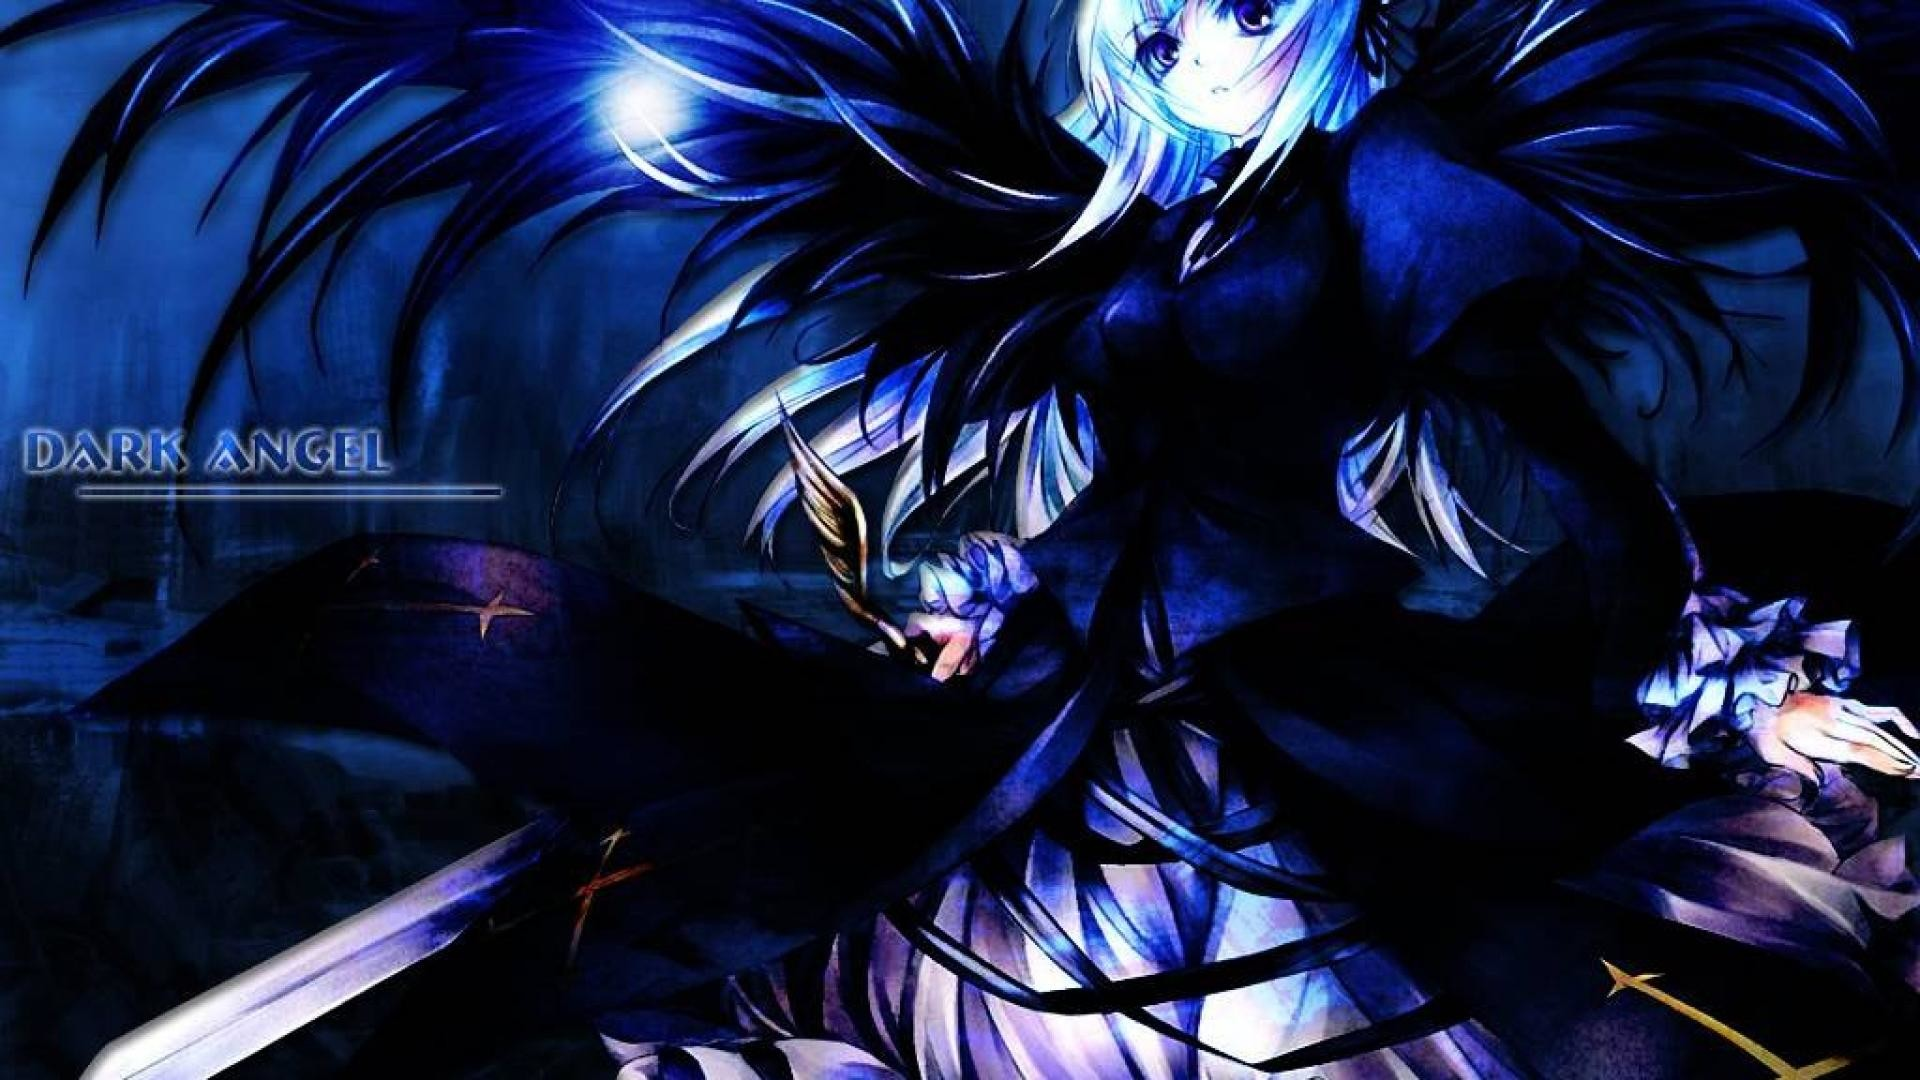 Dark anime girl wallpaper 61 images - Dark anime background ...